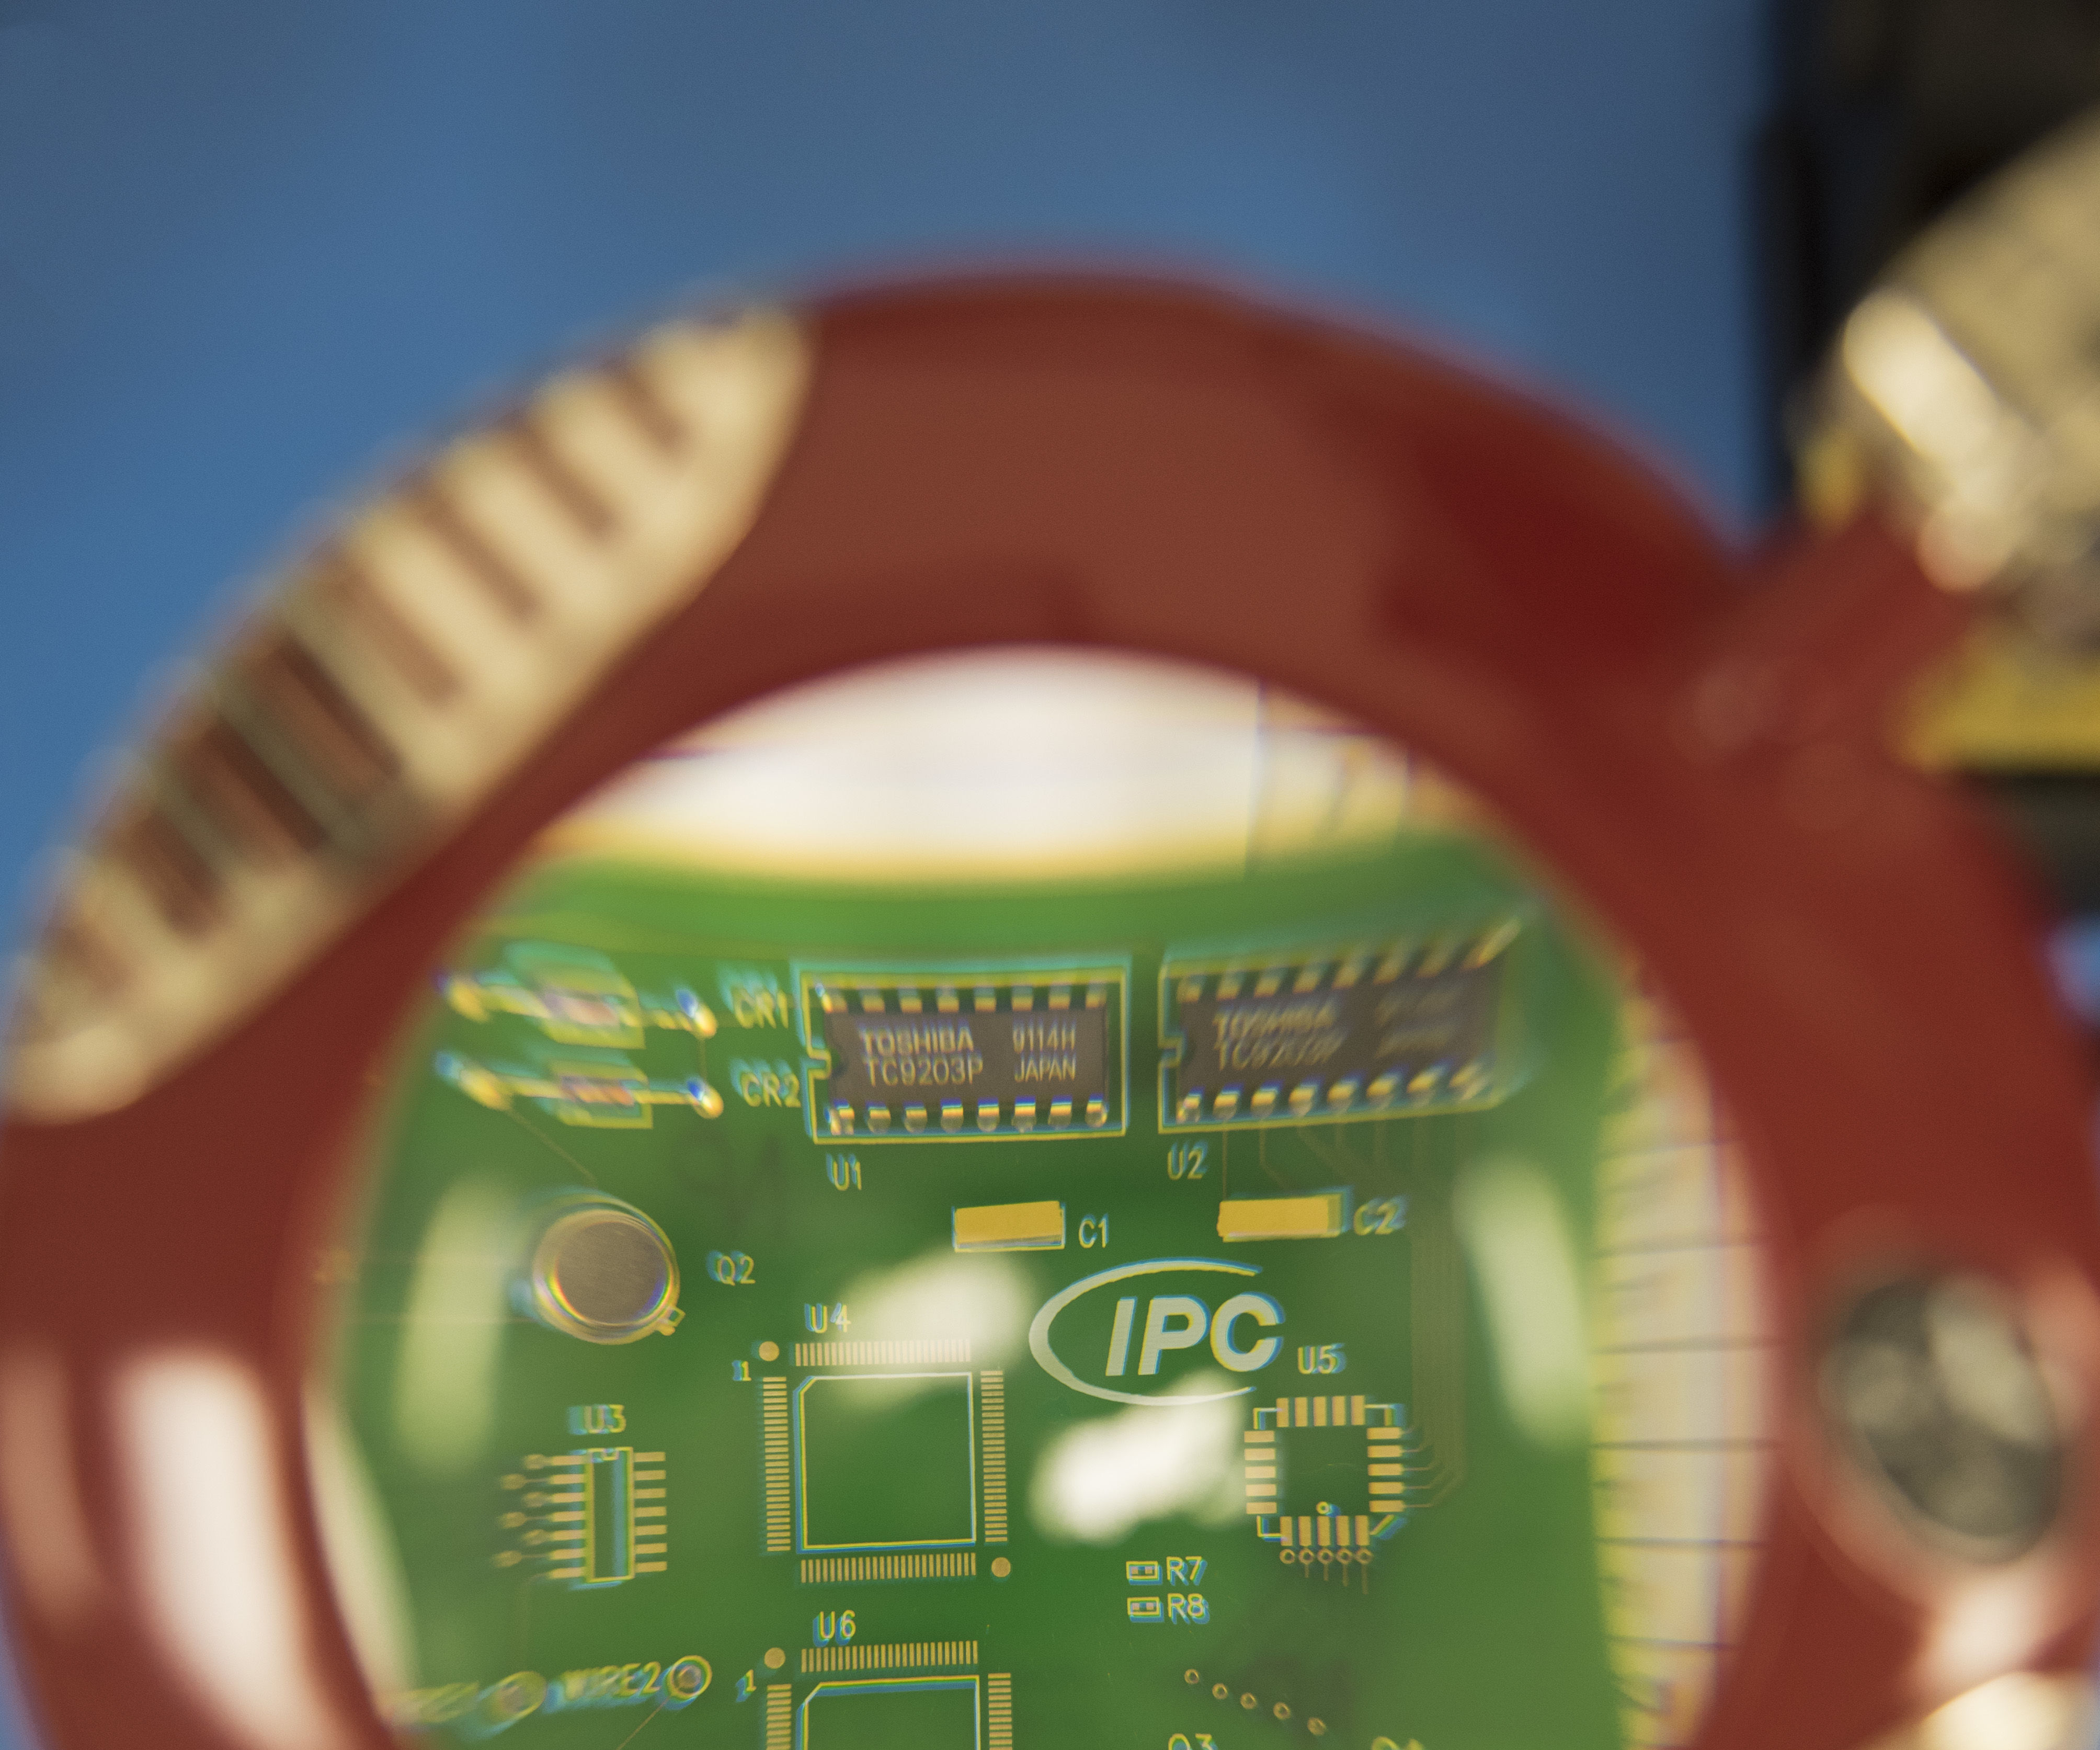 How to Inspect a Printed Circuit Board